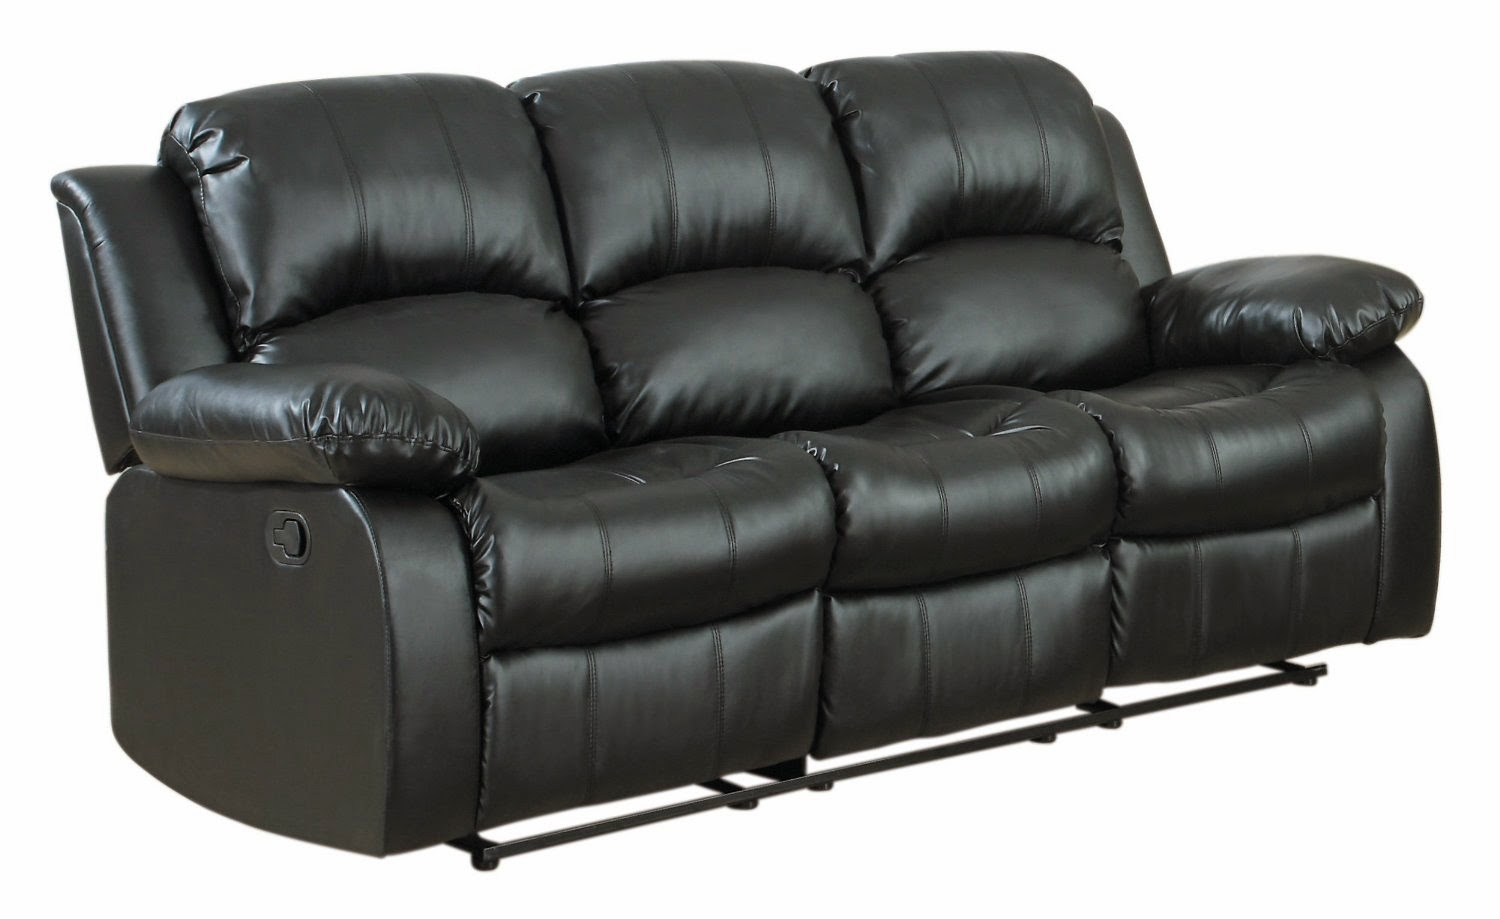 love sofa for sale sleeper air mattress topper cheap recliner sofas black leather reclining